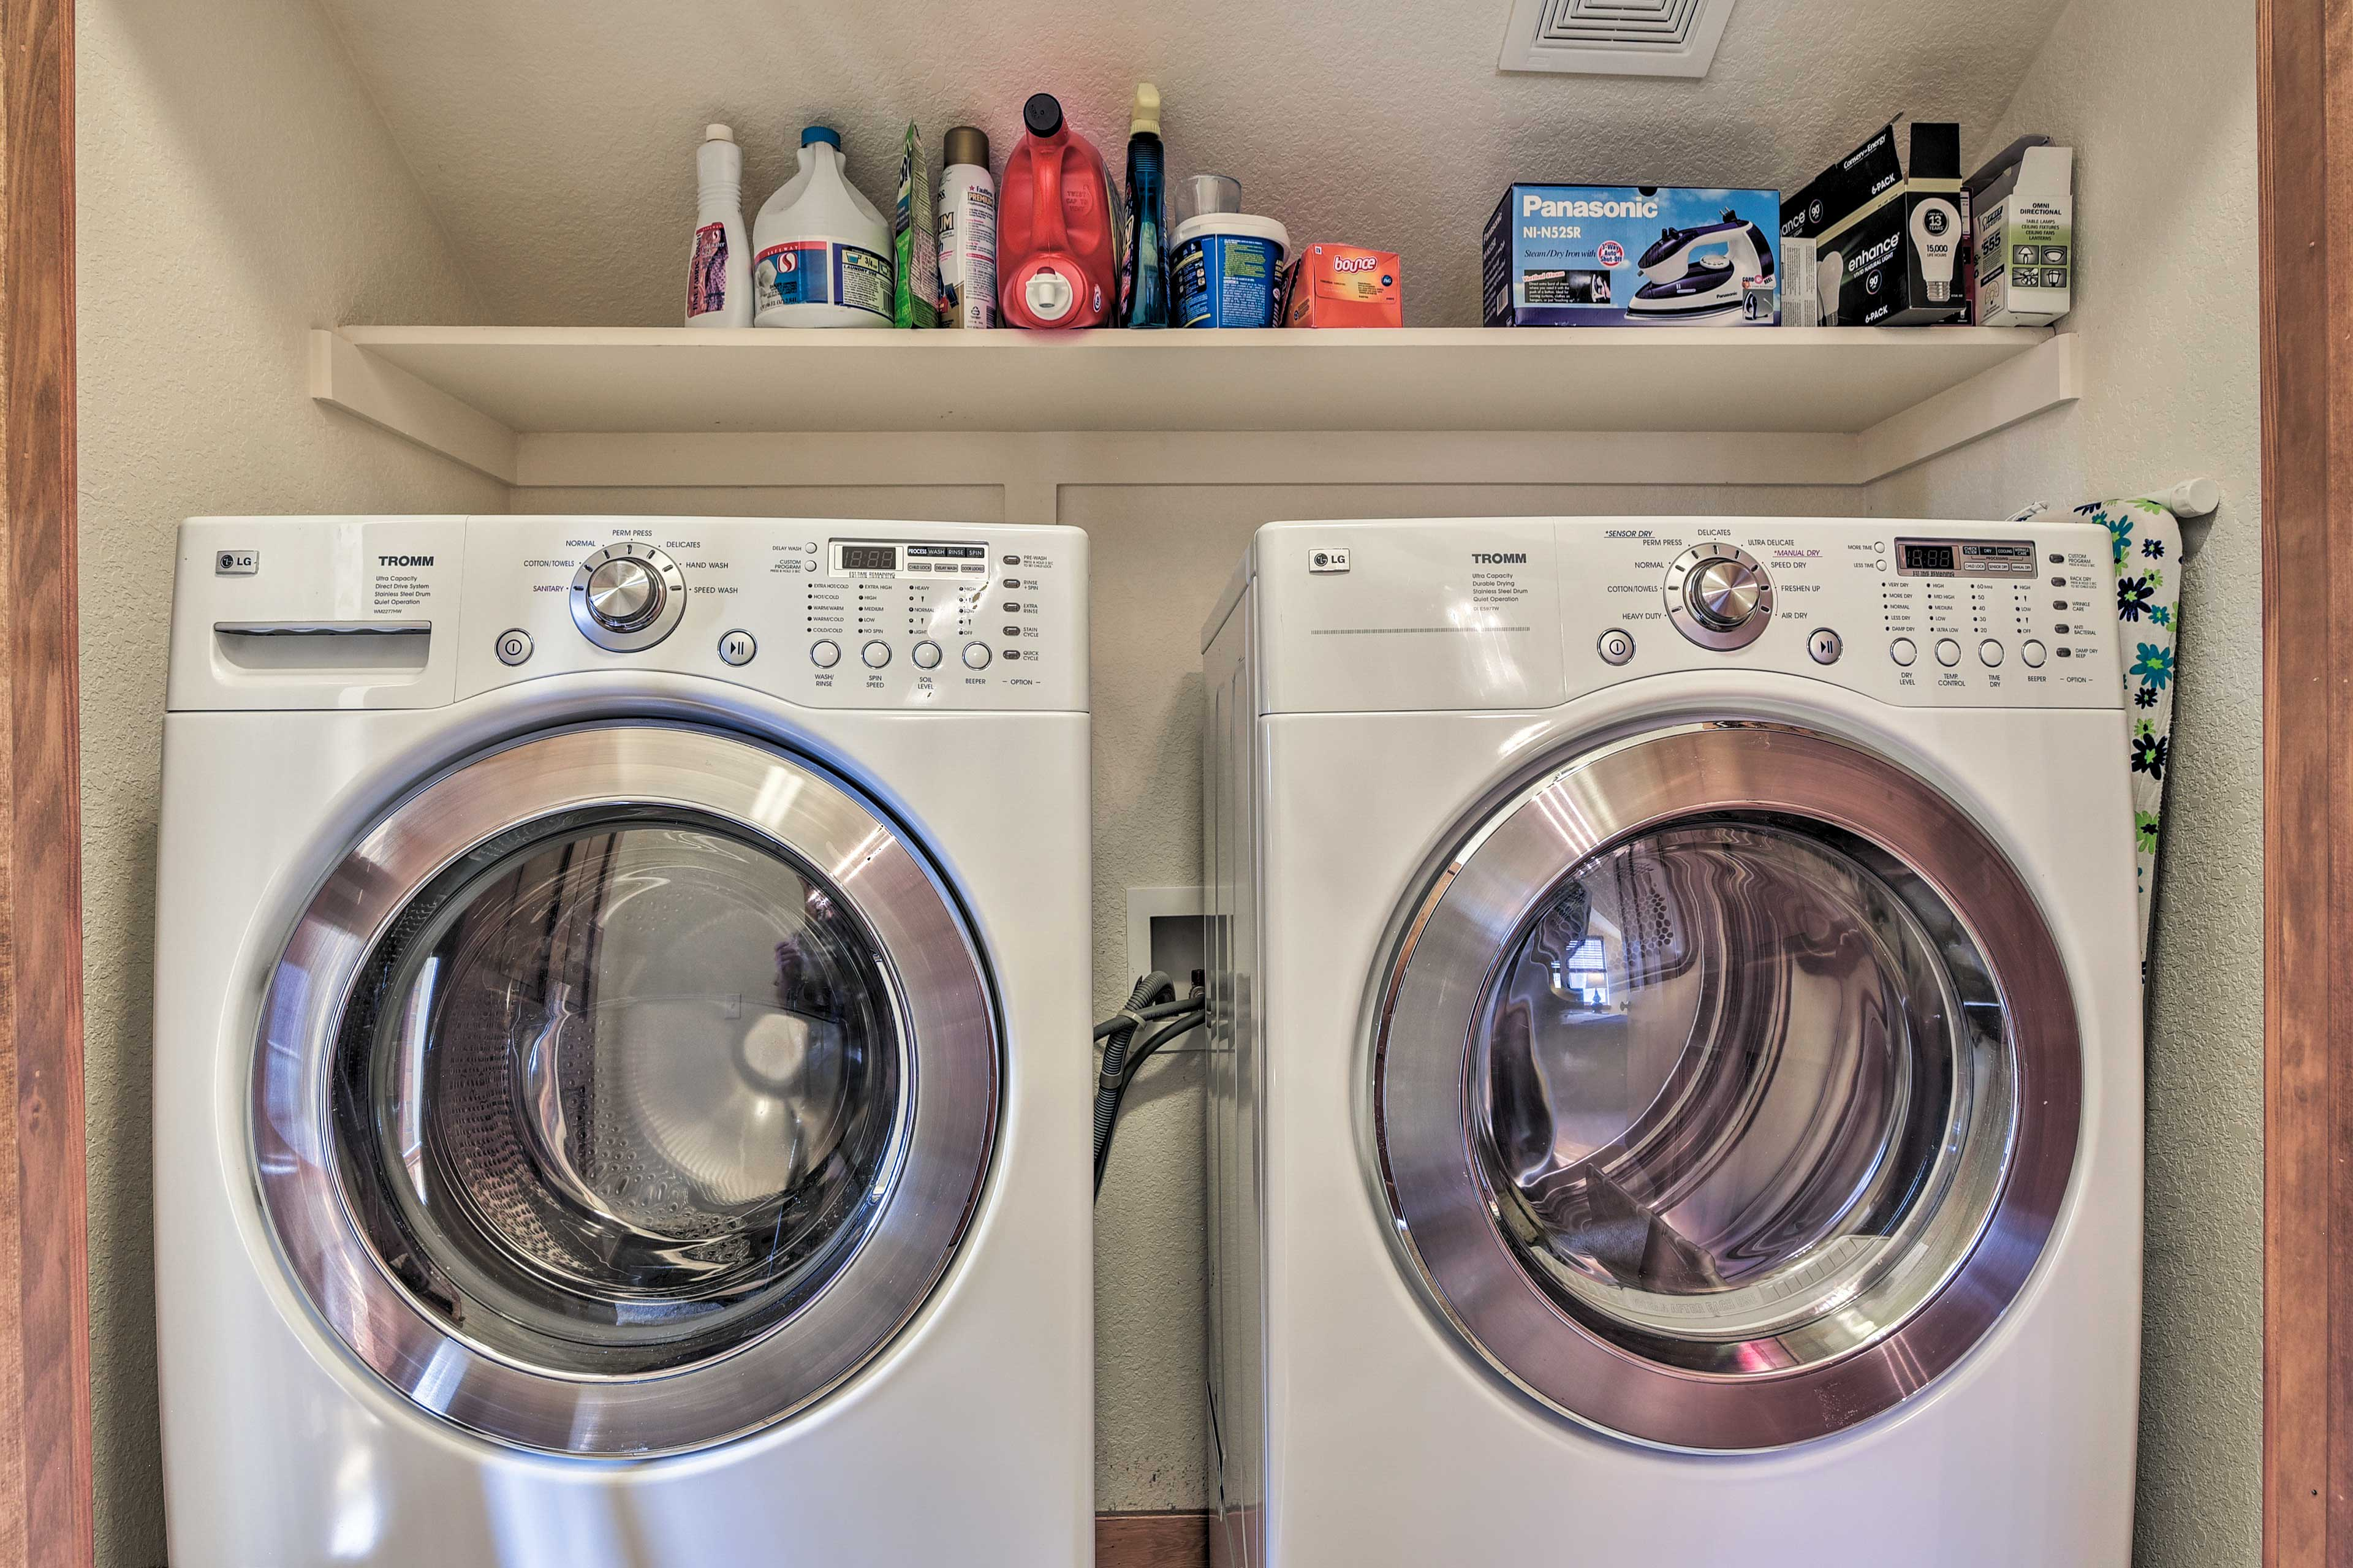 Keep your travel wardrobe fresh with the help of these in-unit laundry machines!